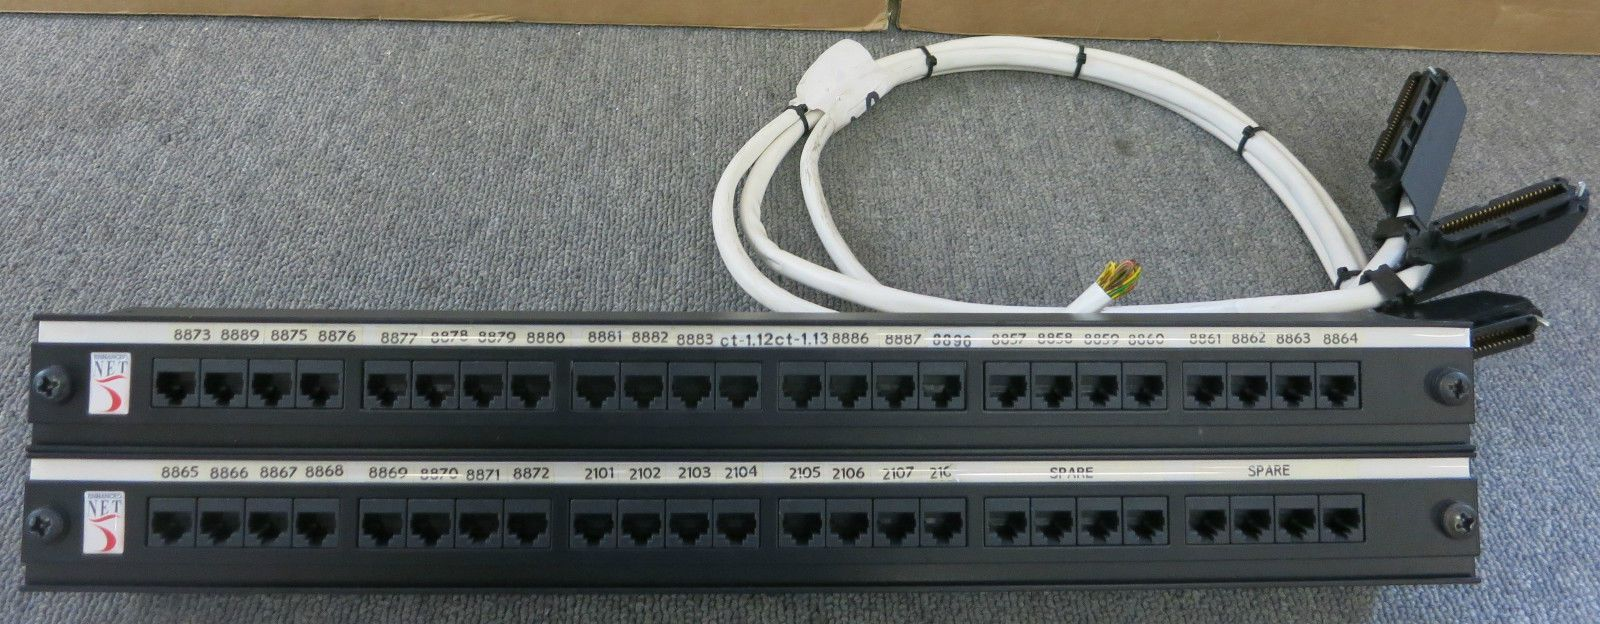 Enhanced Net 48 Port Ethernet Rj45 Network Patch Panel 1u For Of Rack System On Wiring House Mount